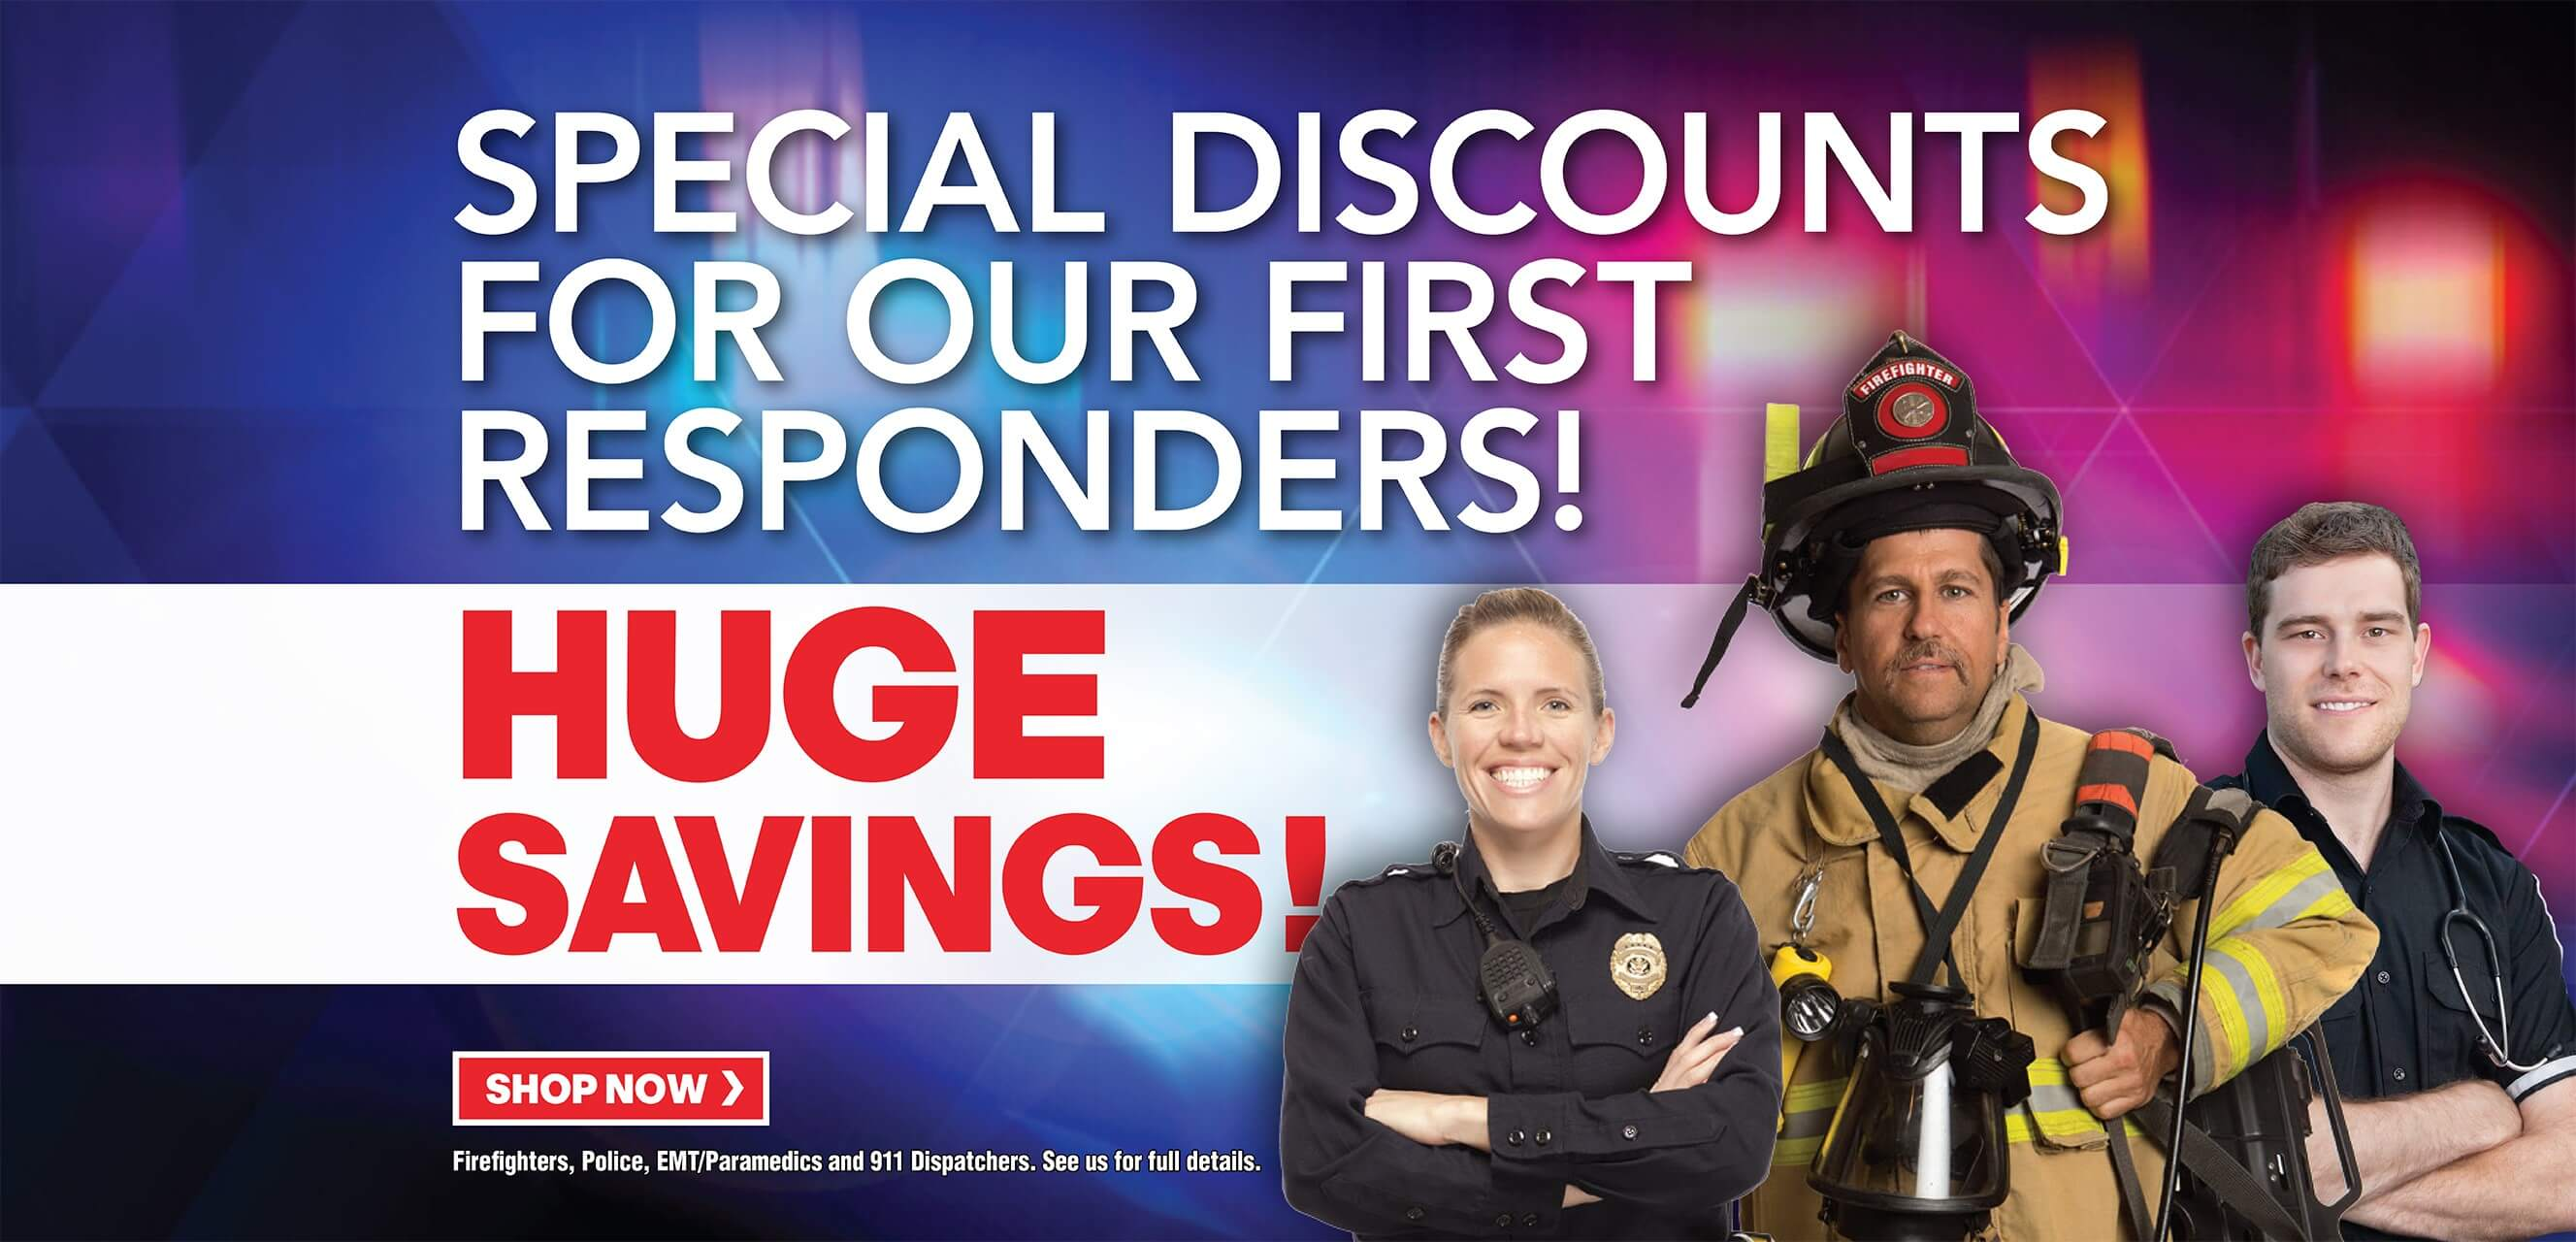 Special discounts for our 1st Responders! Huge Savings at Behlmann.